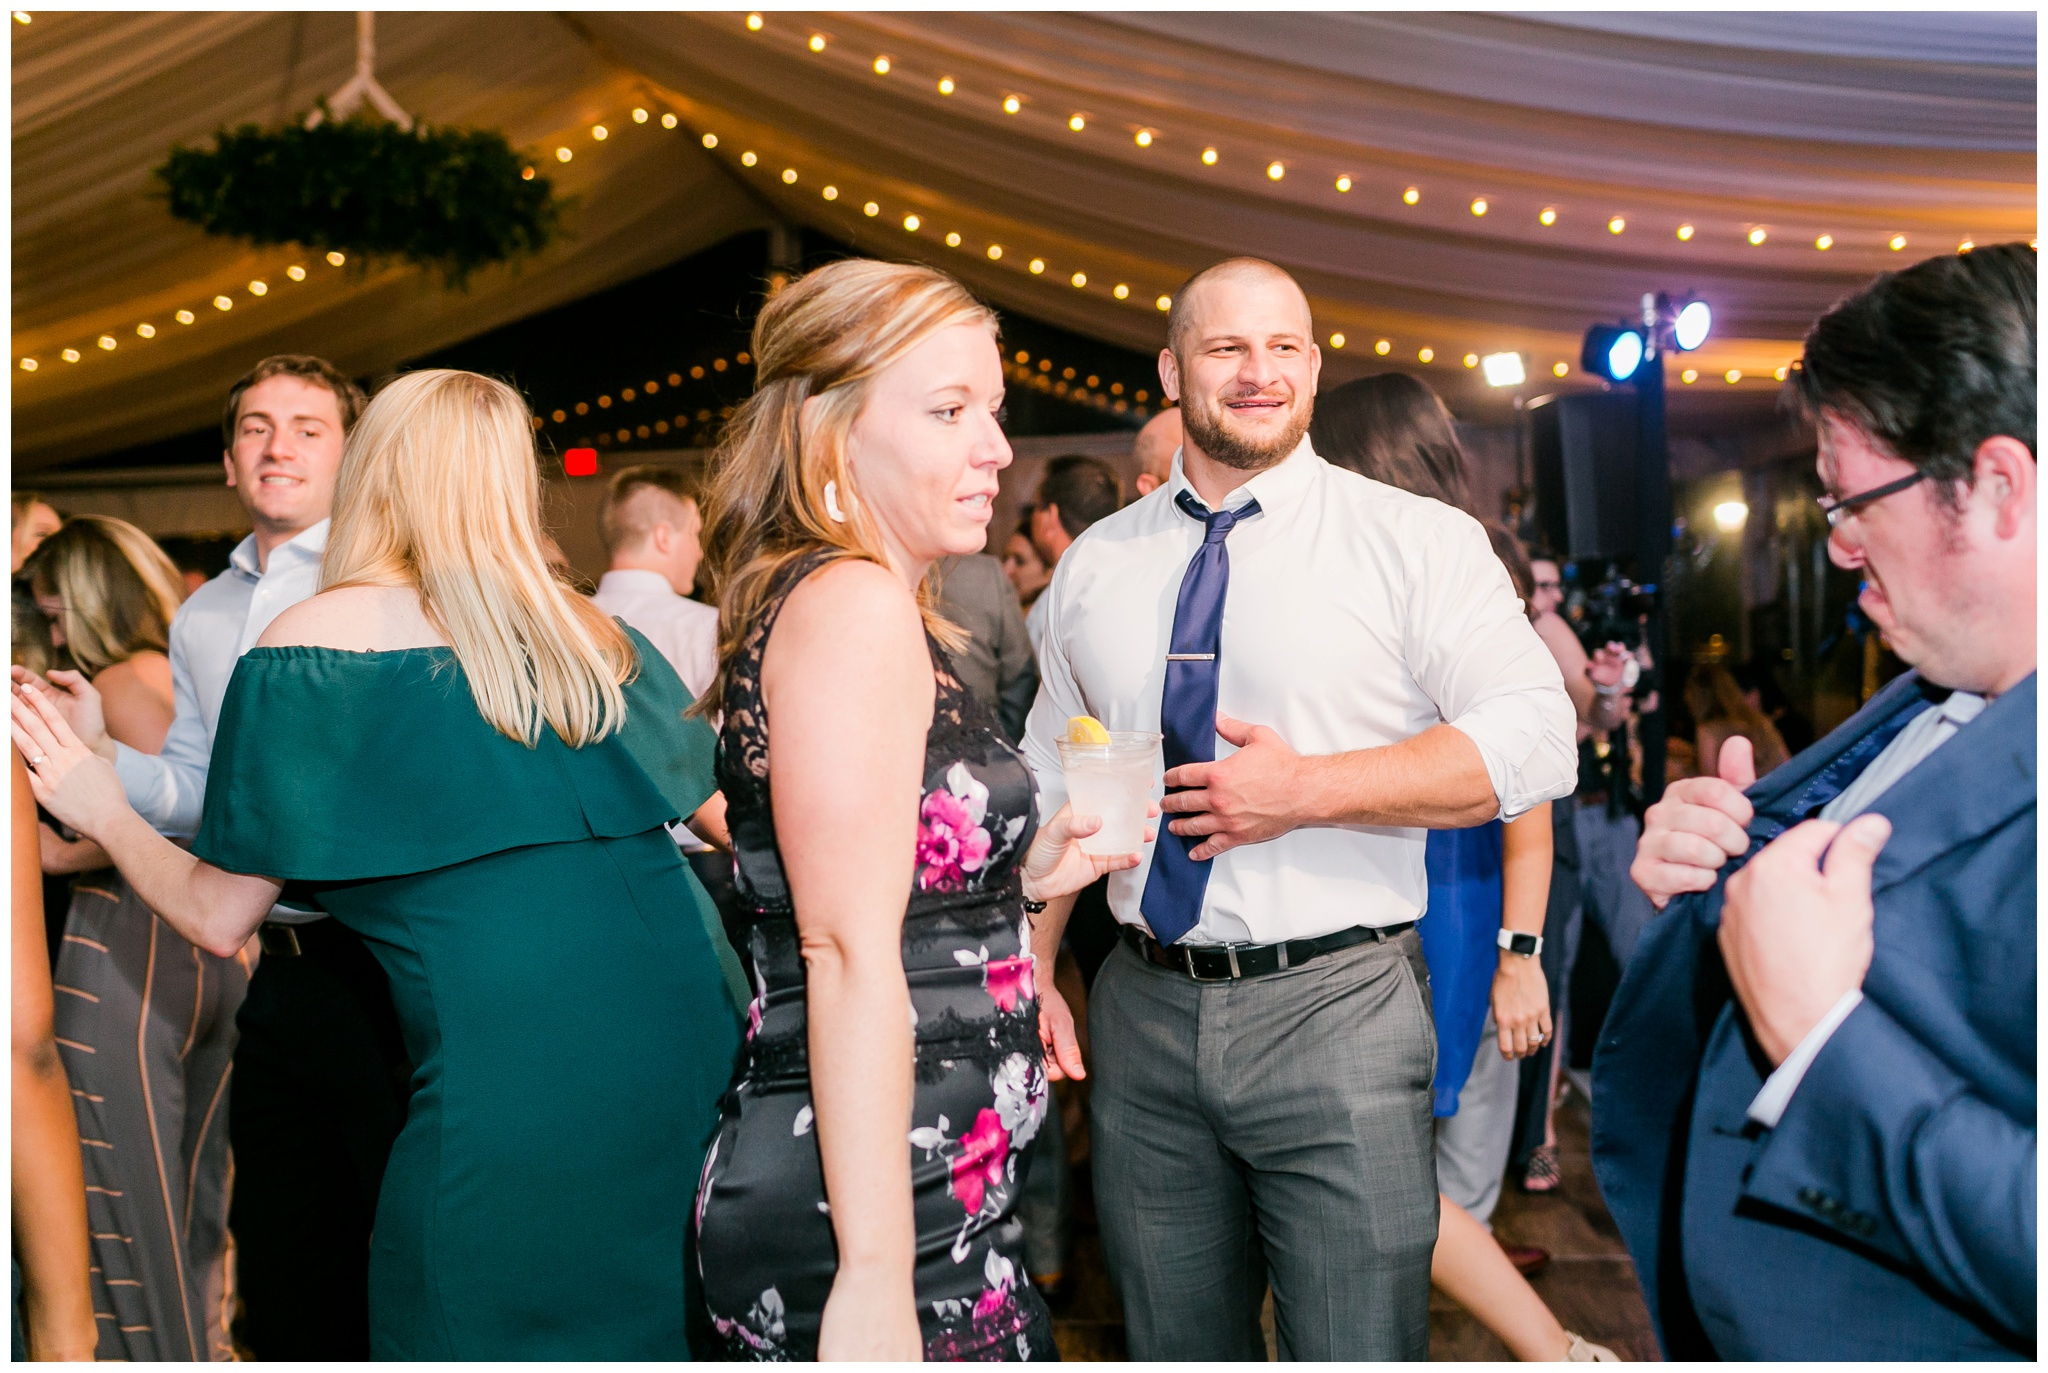 bishops_bay_country_club_wedding_middleton_wisconsin_caynay_photo_4755.jpg